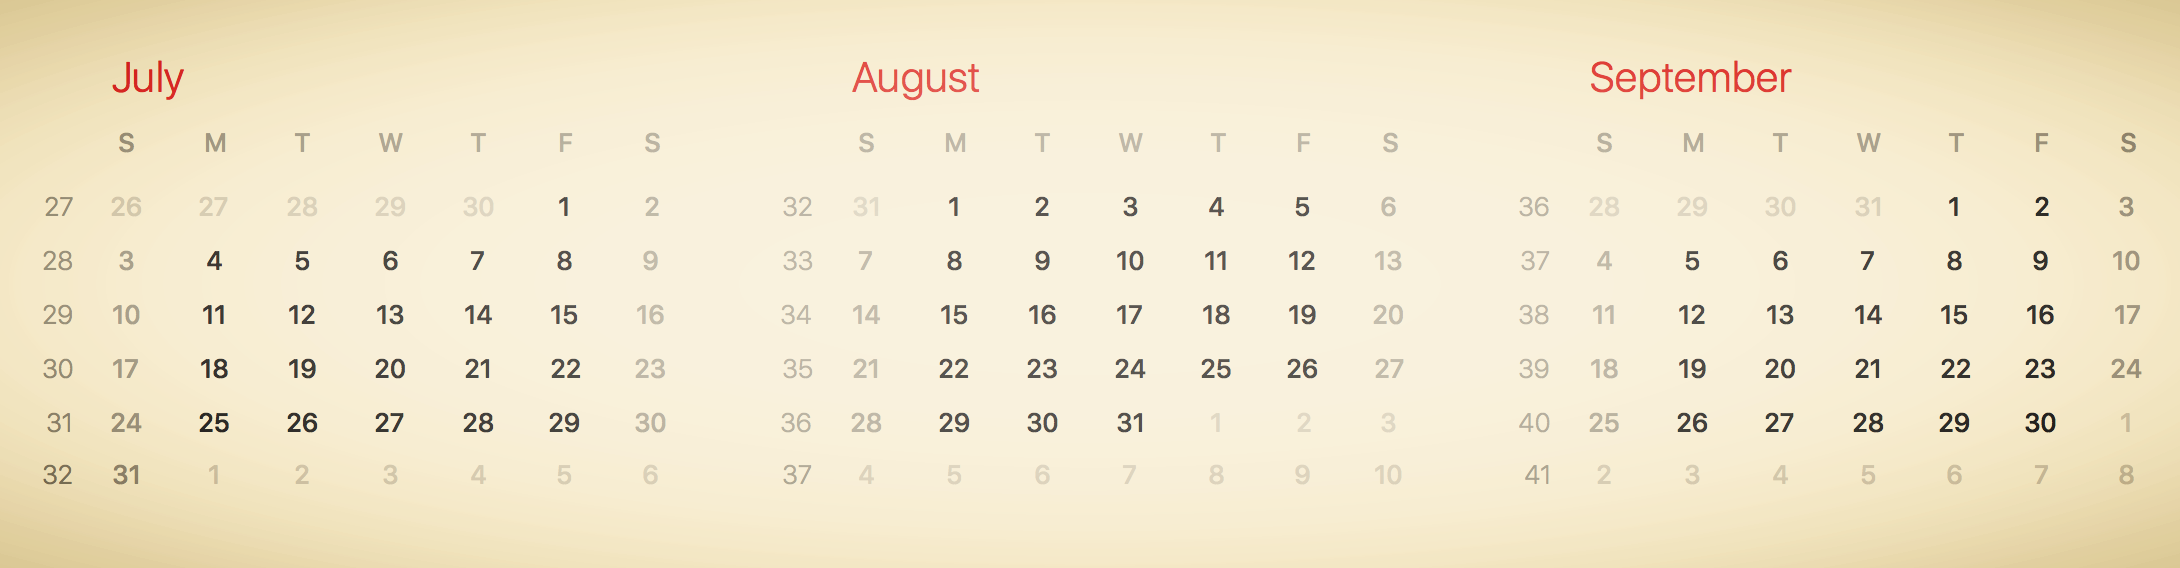 Our Planned Start Date Window: July 10 - Aug 22, 2016; Actual Trip: August 8 - August 25, 2016 (18 days)